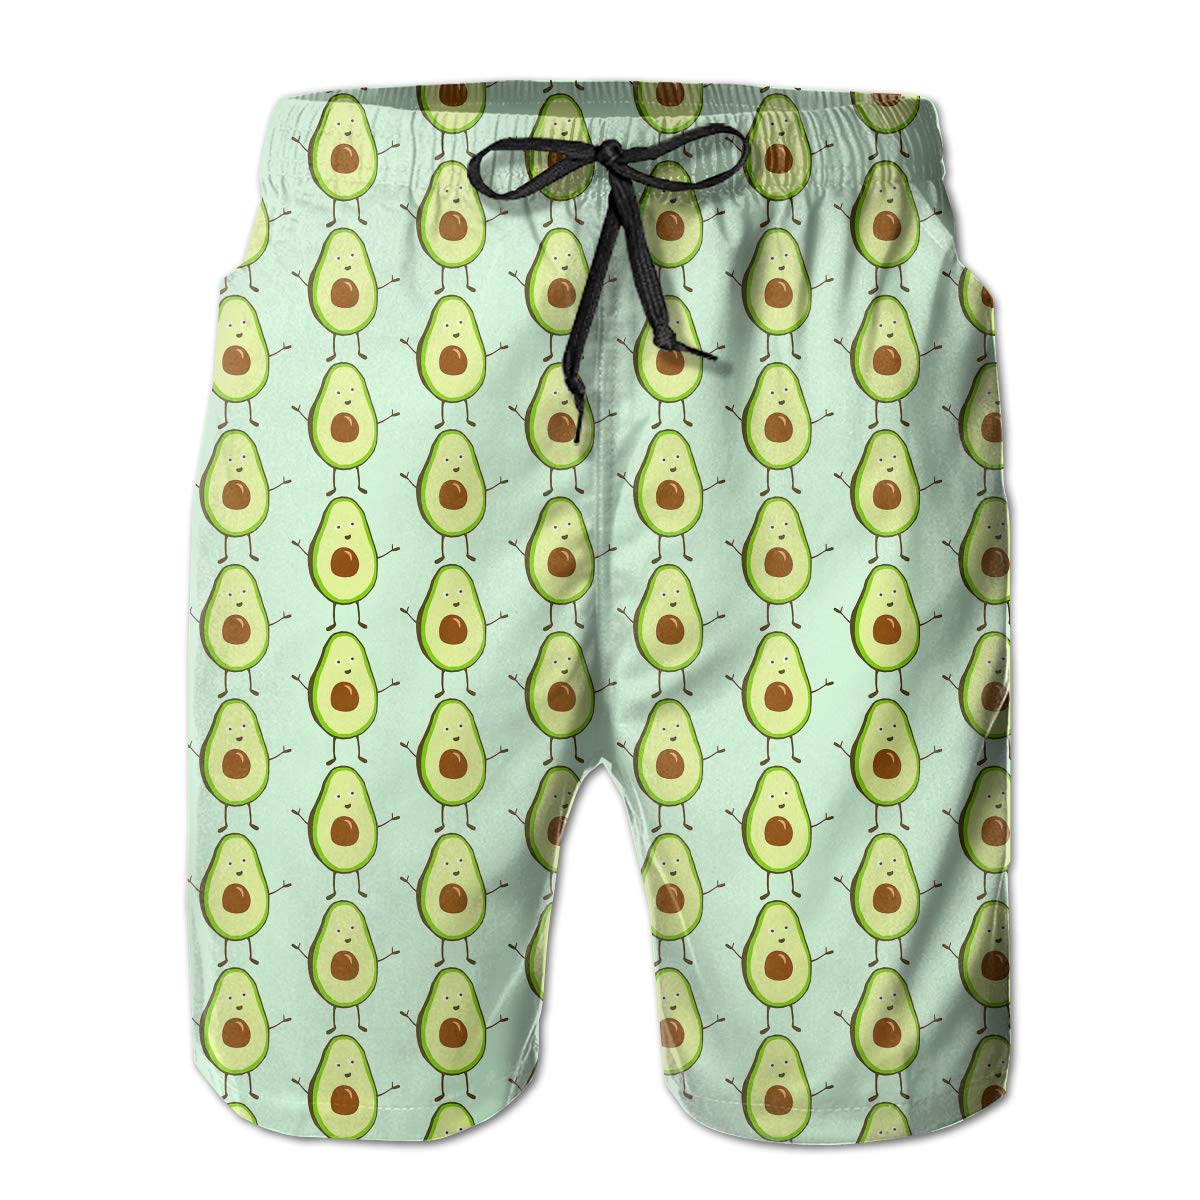 EYFlife Cute Avocado Men/â/€s Beach Board Shorts Quick Dry Swim Truck Shorts